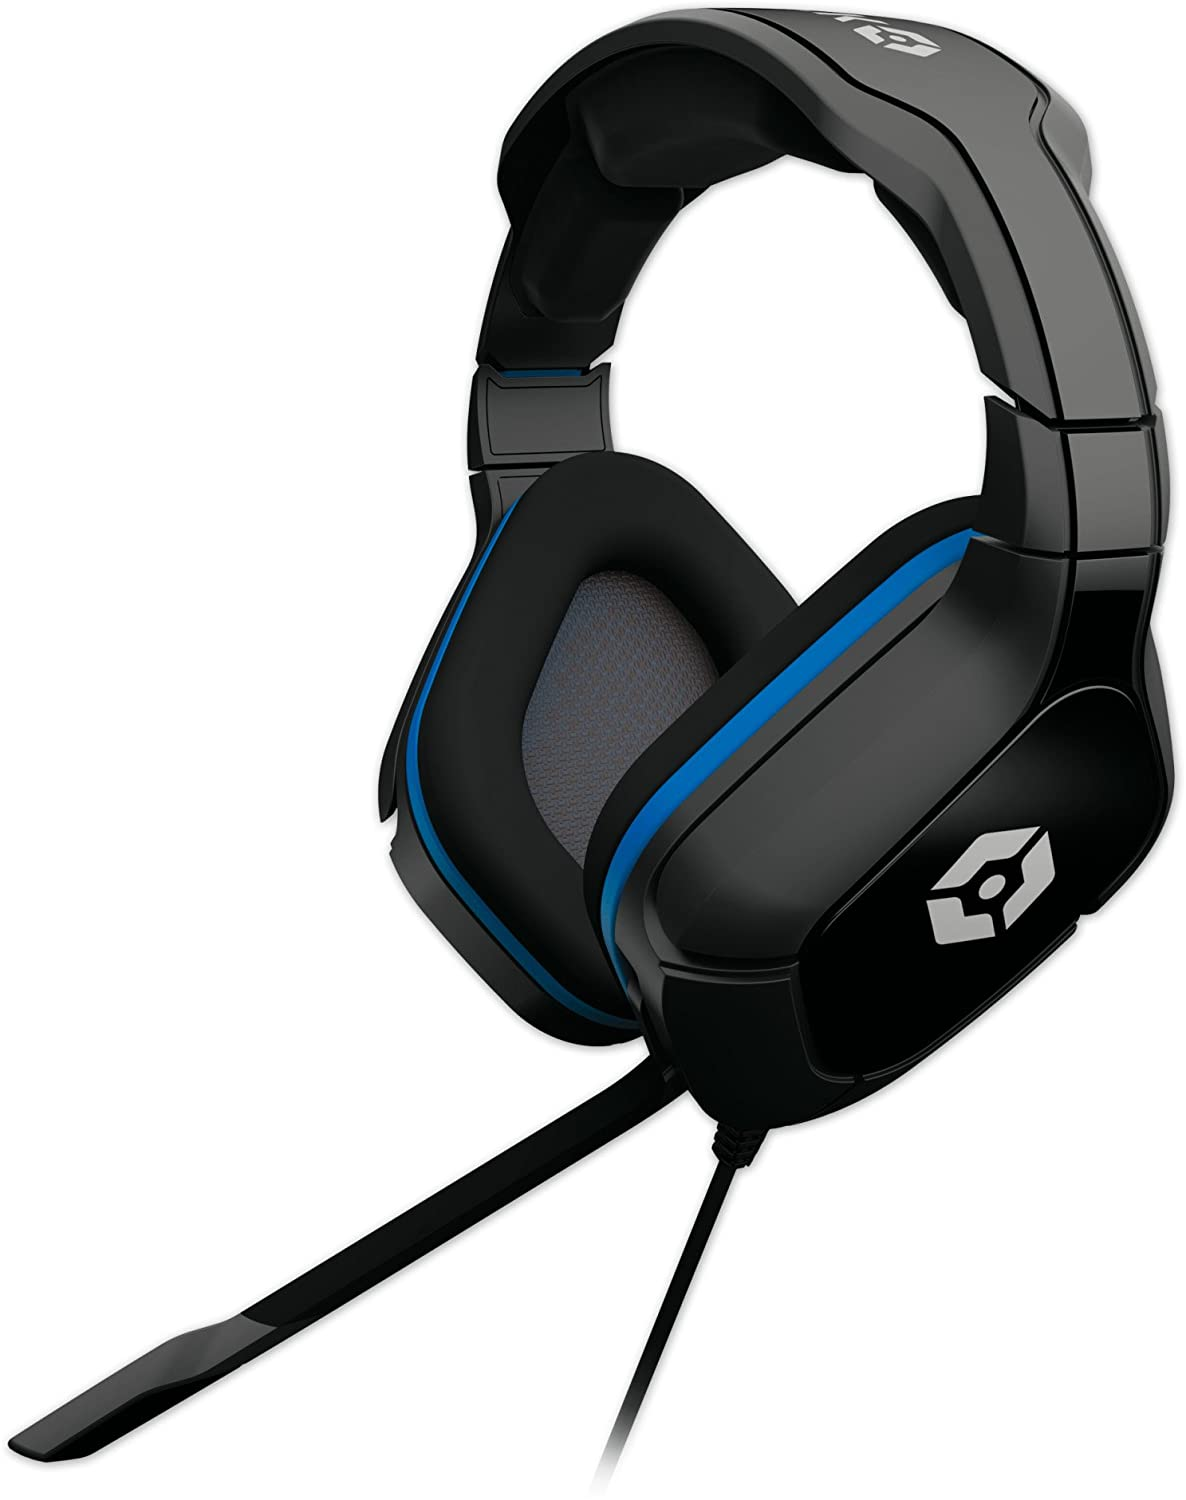 Gioteck HC 2 Wired Stereo Gaming Headset For PS4 And Xbox